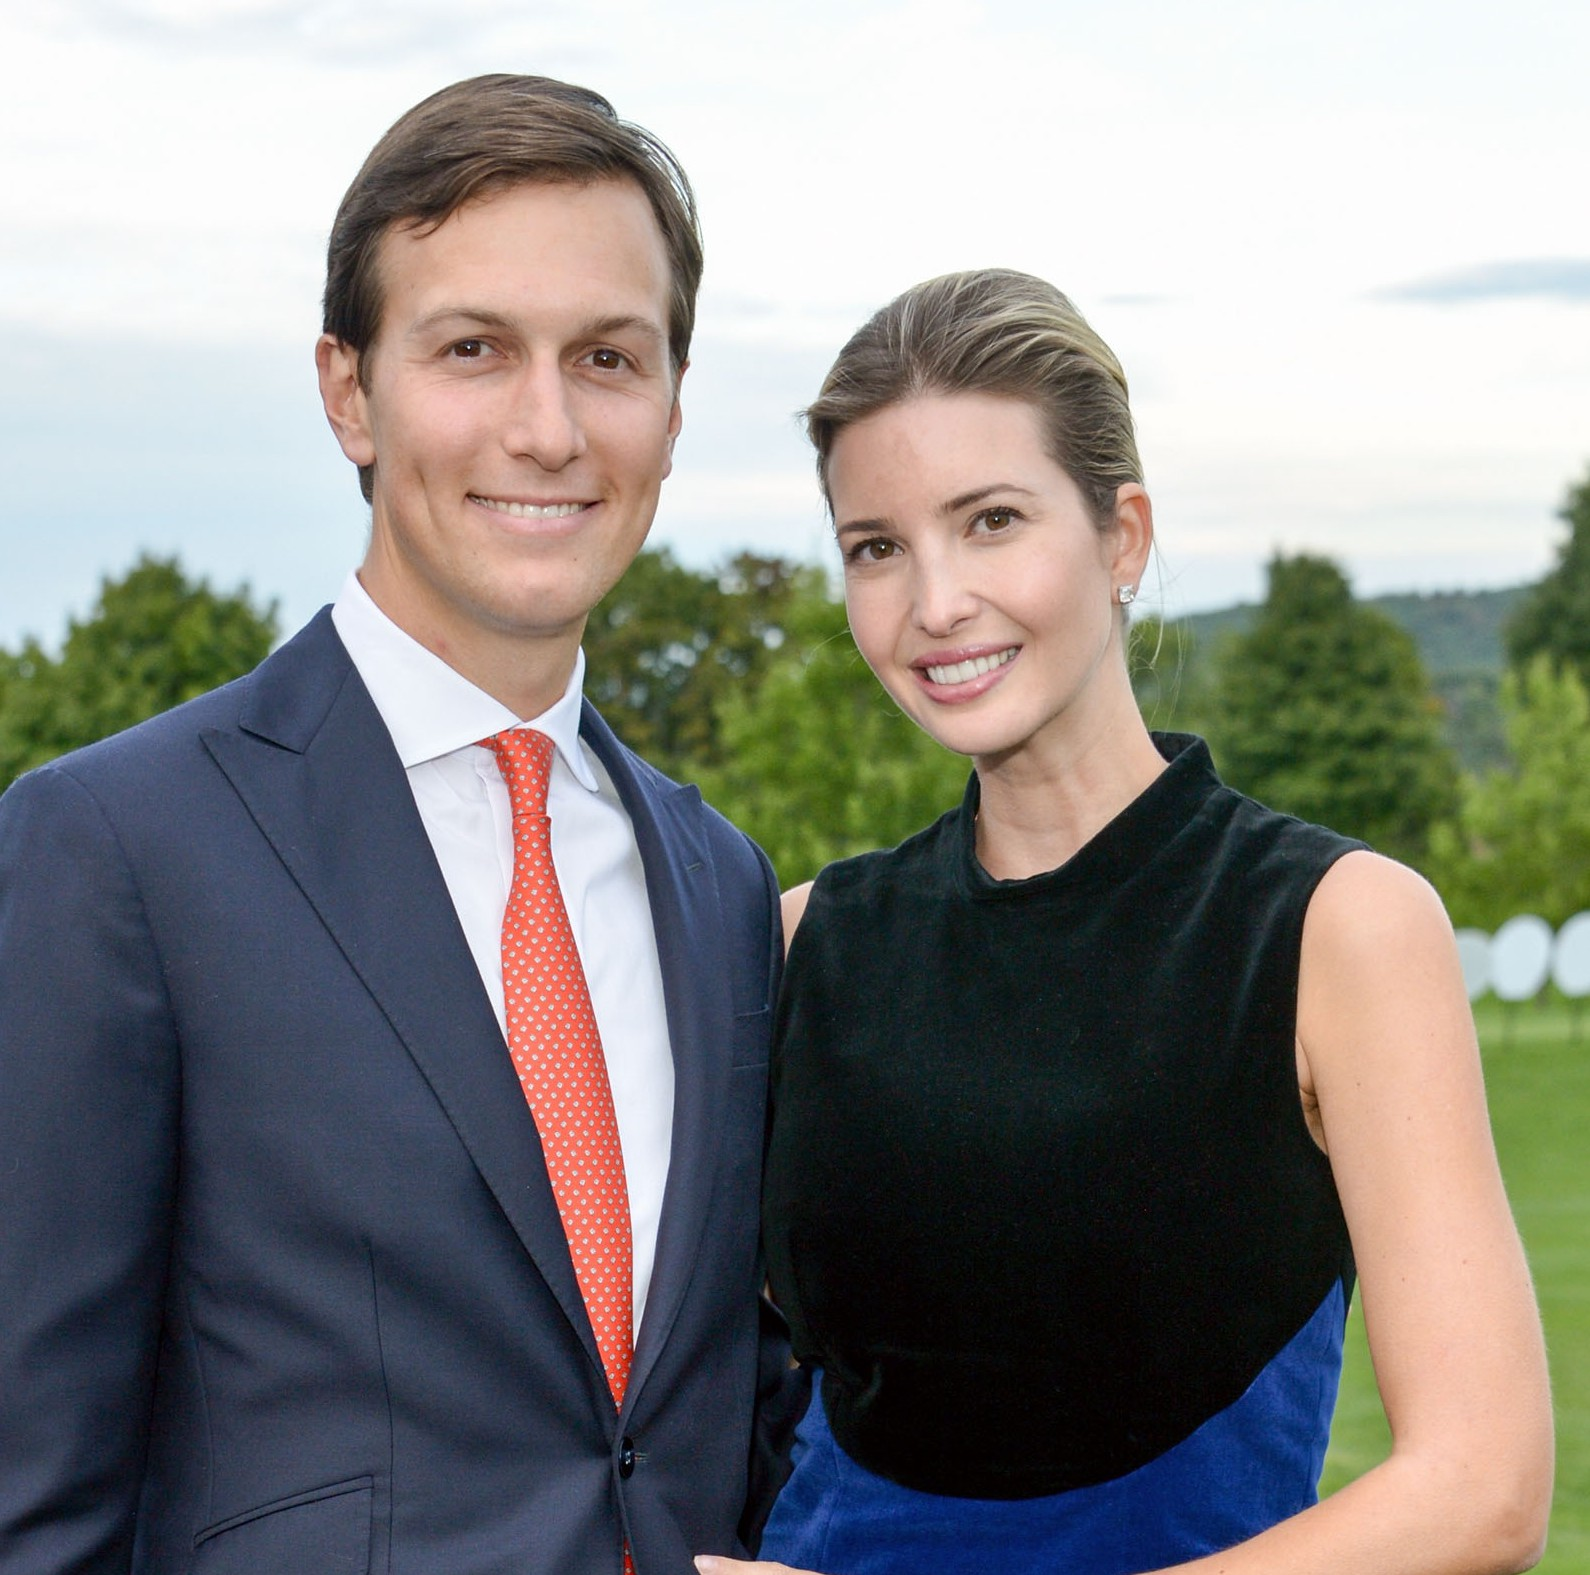 Jared Kushner and Ivanka Trump attend the 9th Annual Eric Trump Foundation Golf Invitational Auction & Dinner at Trump National Golf Club Westchester on September 21, 2015 in Briarcliff Manor, New York.  (Getty)